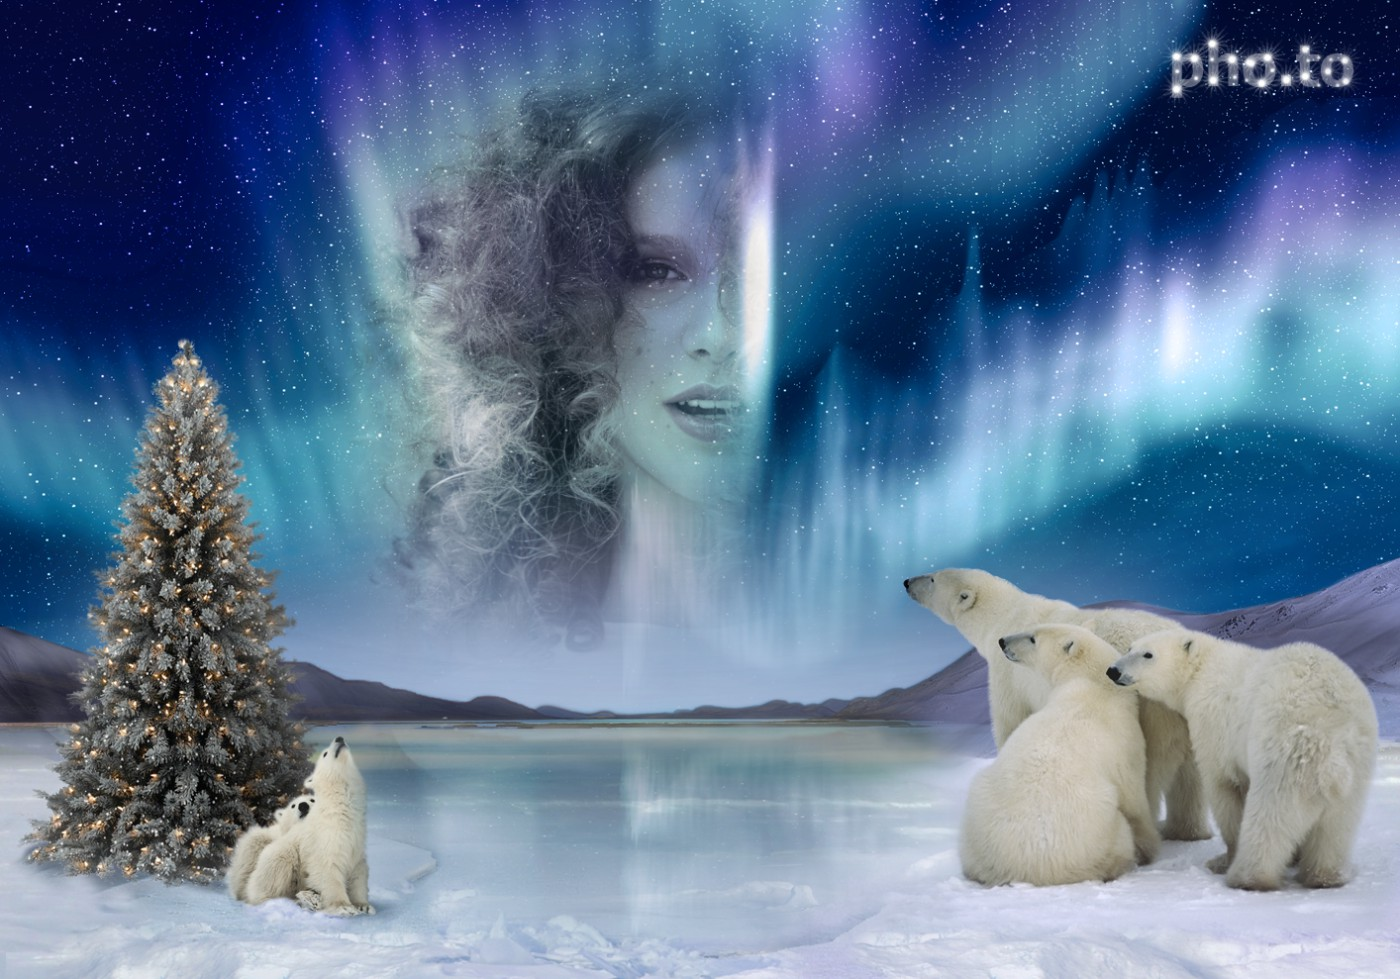 Northern Lights in the night sky, created out of woman photo online